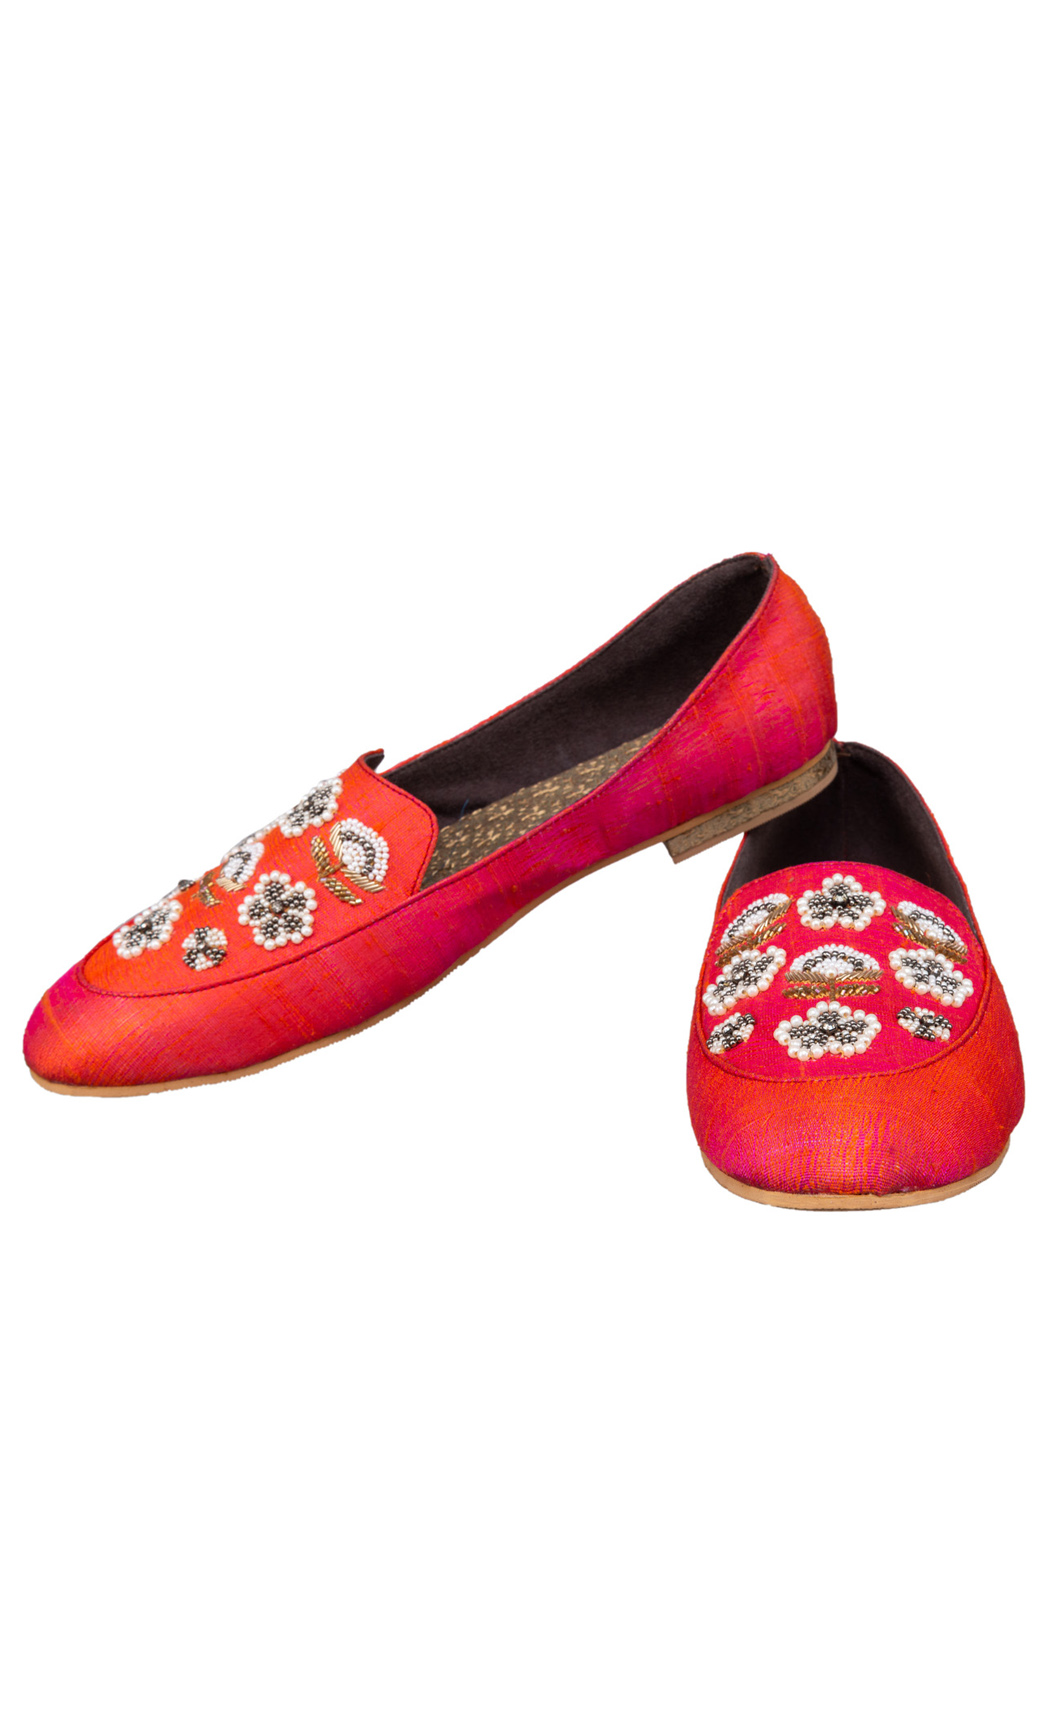 Orange Pearls and Sequins Loafers - Buy Online